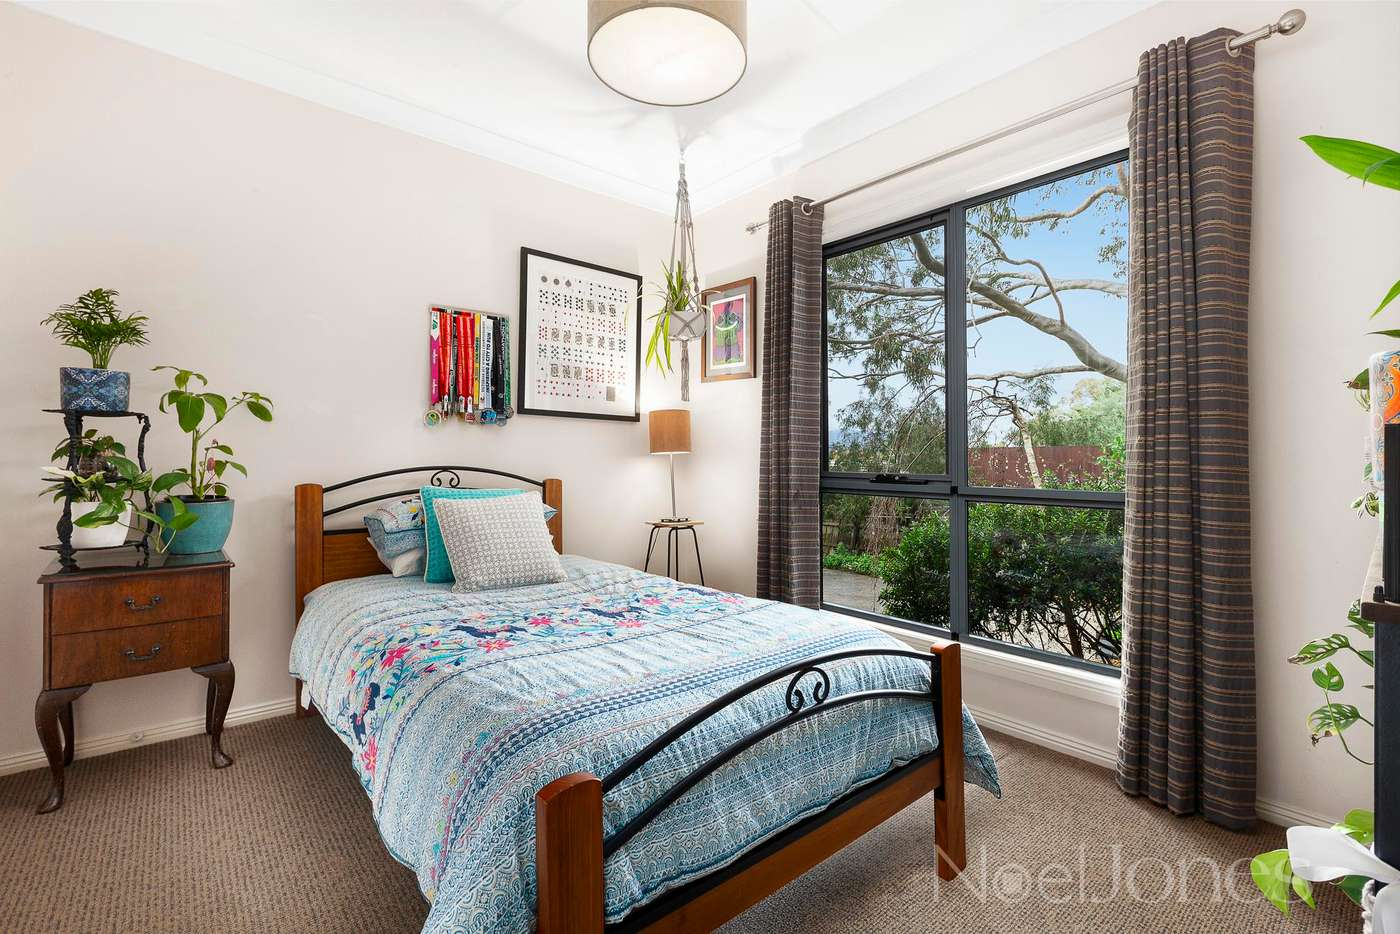 Seventh view of Homely house listing, 1A Mulduri Crescent, Croydon South VIC 3136